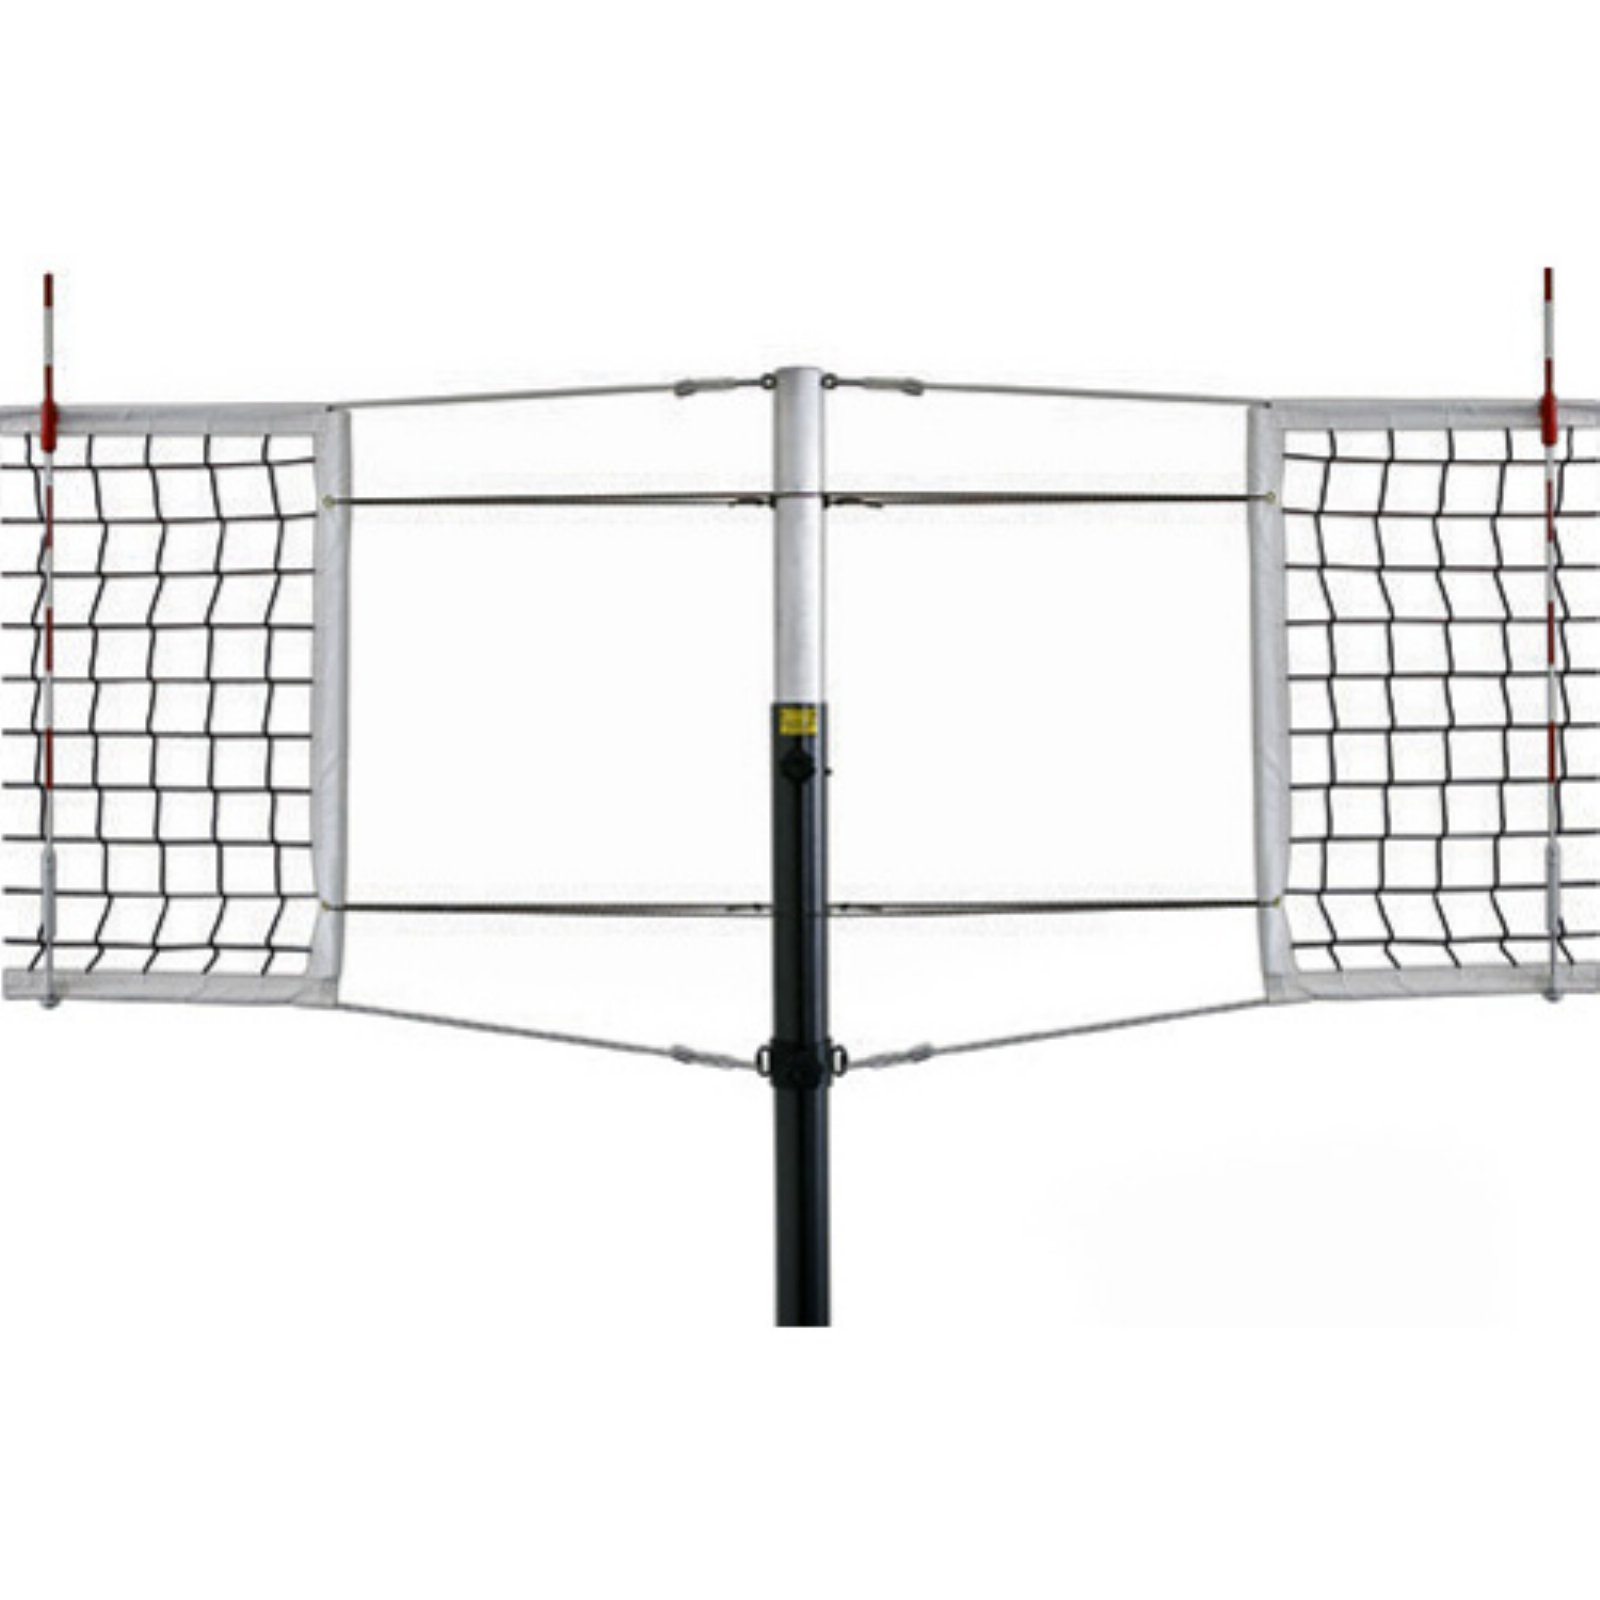 Galaxy Titanium Side-by-Side Double Court Competition Volleyball Set